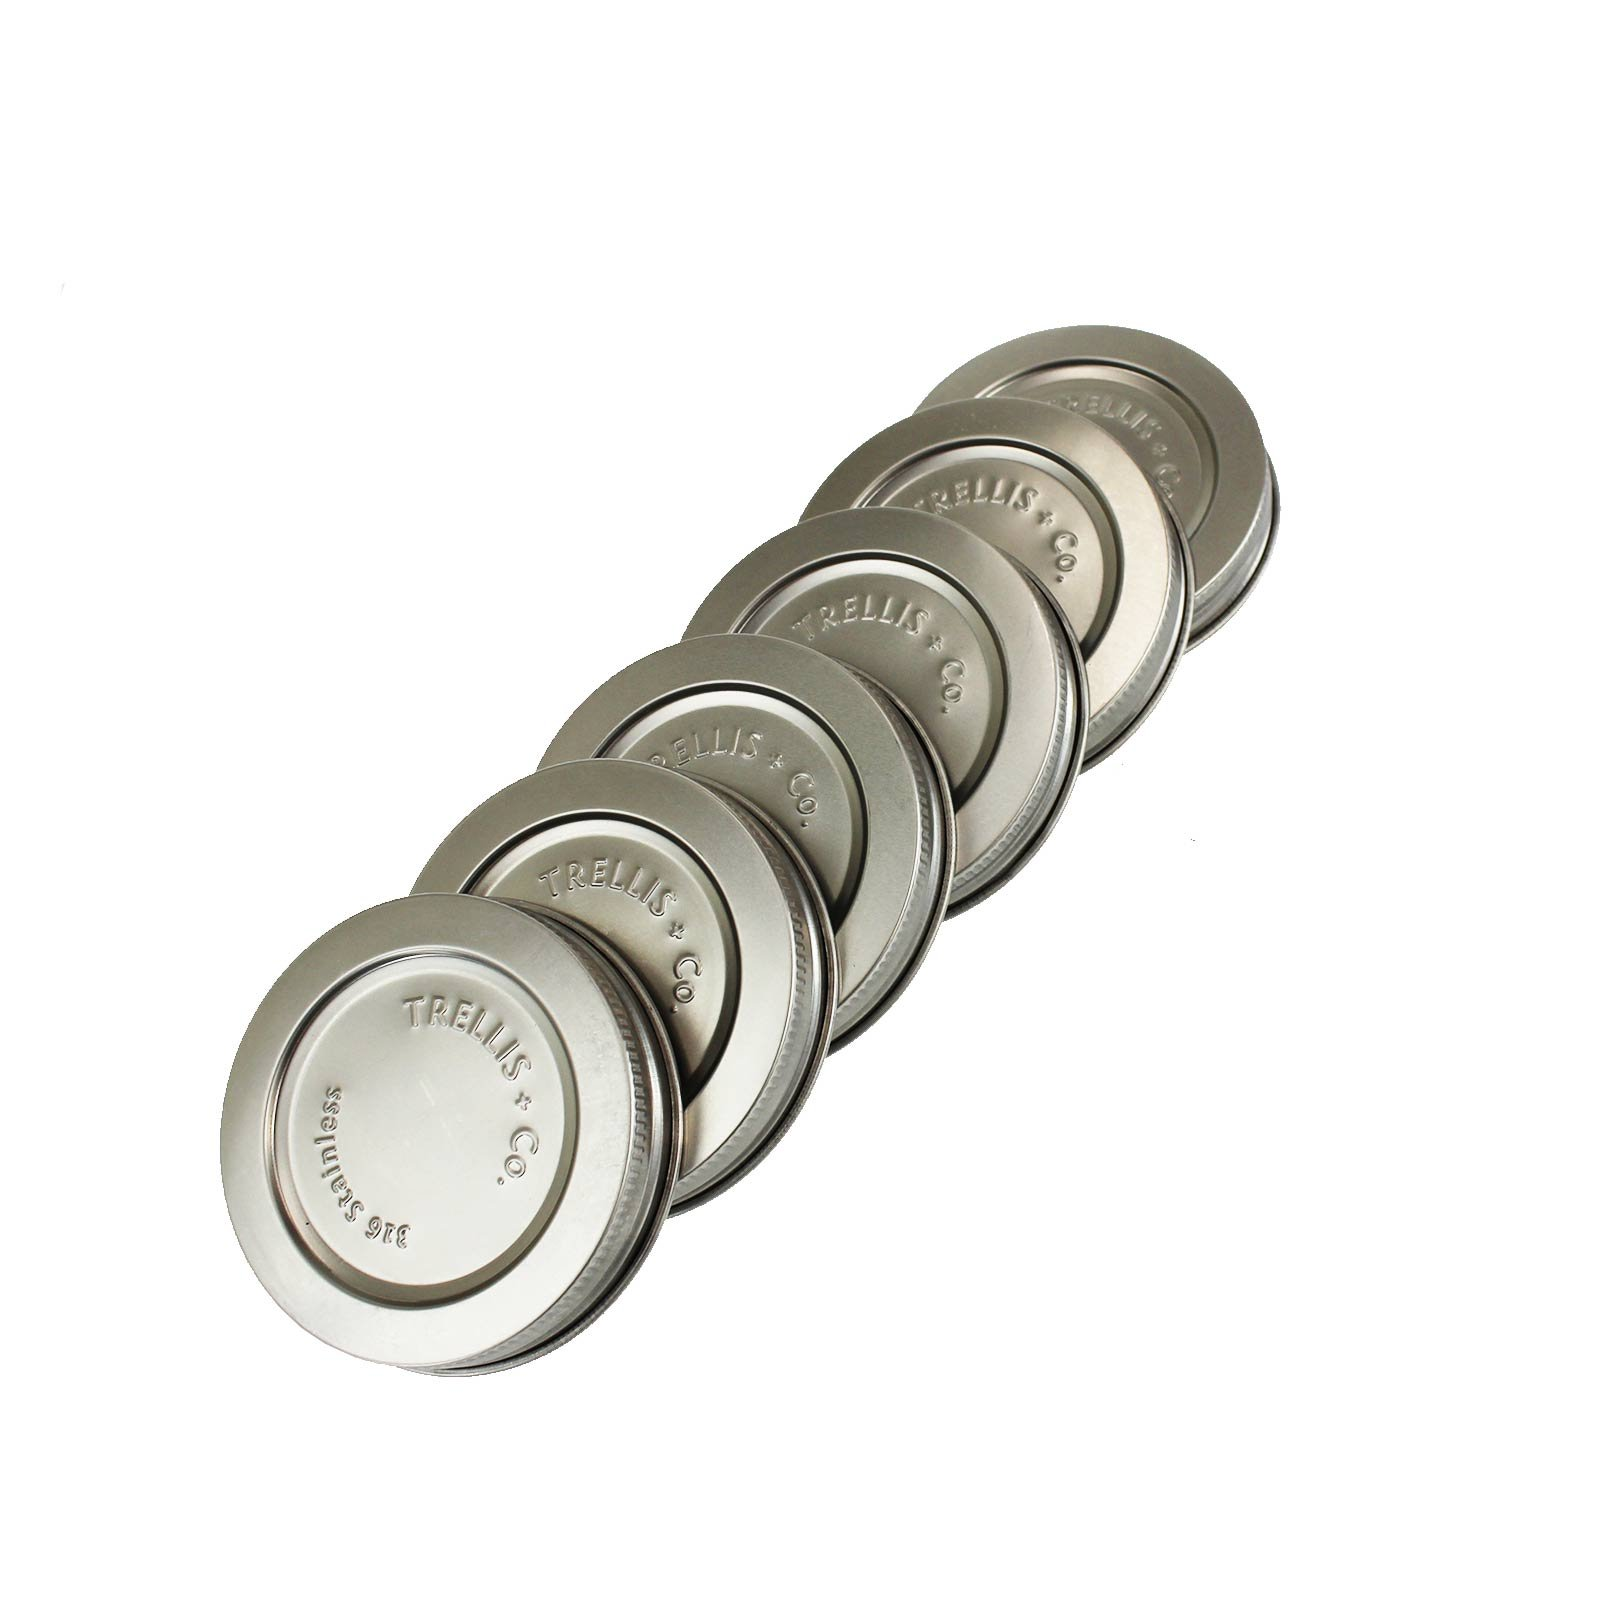 T&Co. STAMPED Stainless Steel Wide Mouth Mason Jar Lids/Tops - Set of 6 - For Pickling, Canning, Storage, Dry Goods - Durable & Rustproof - 316 Stainless